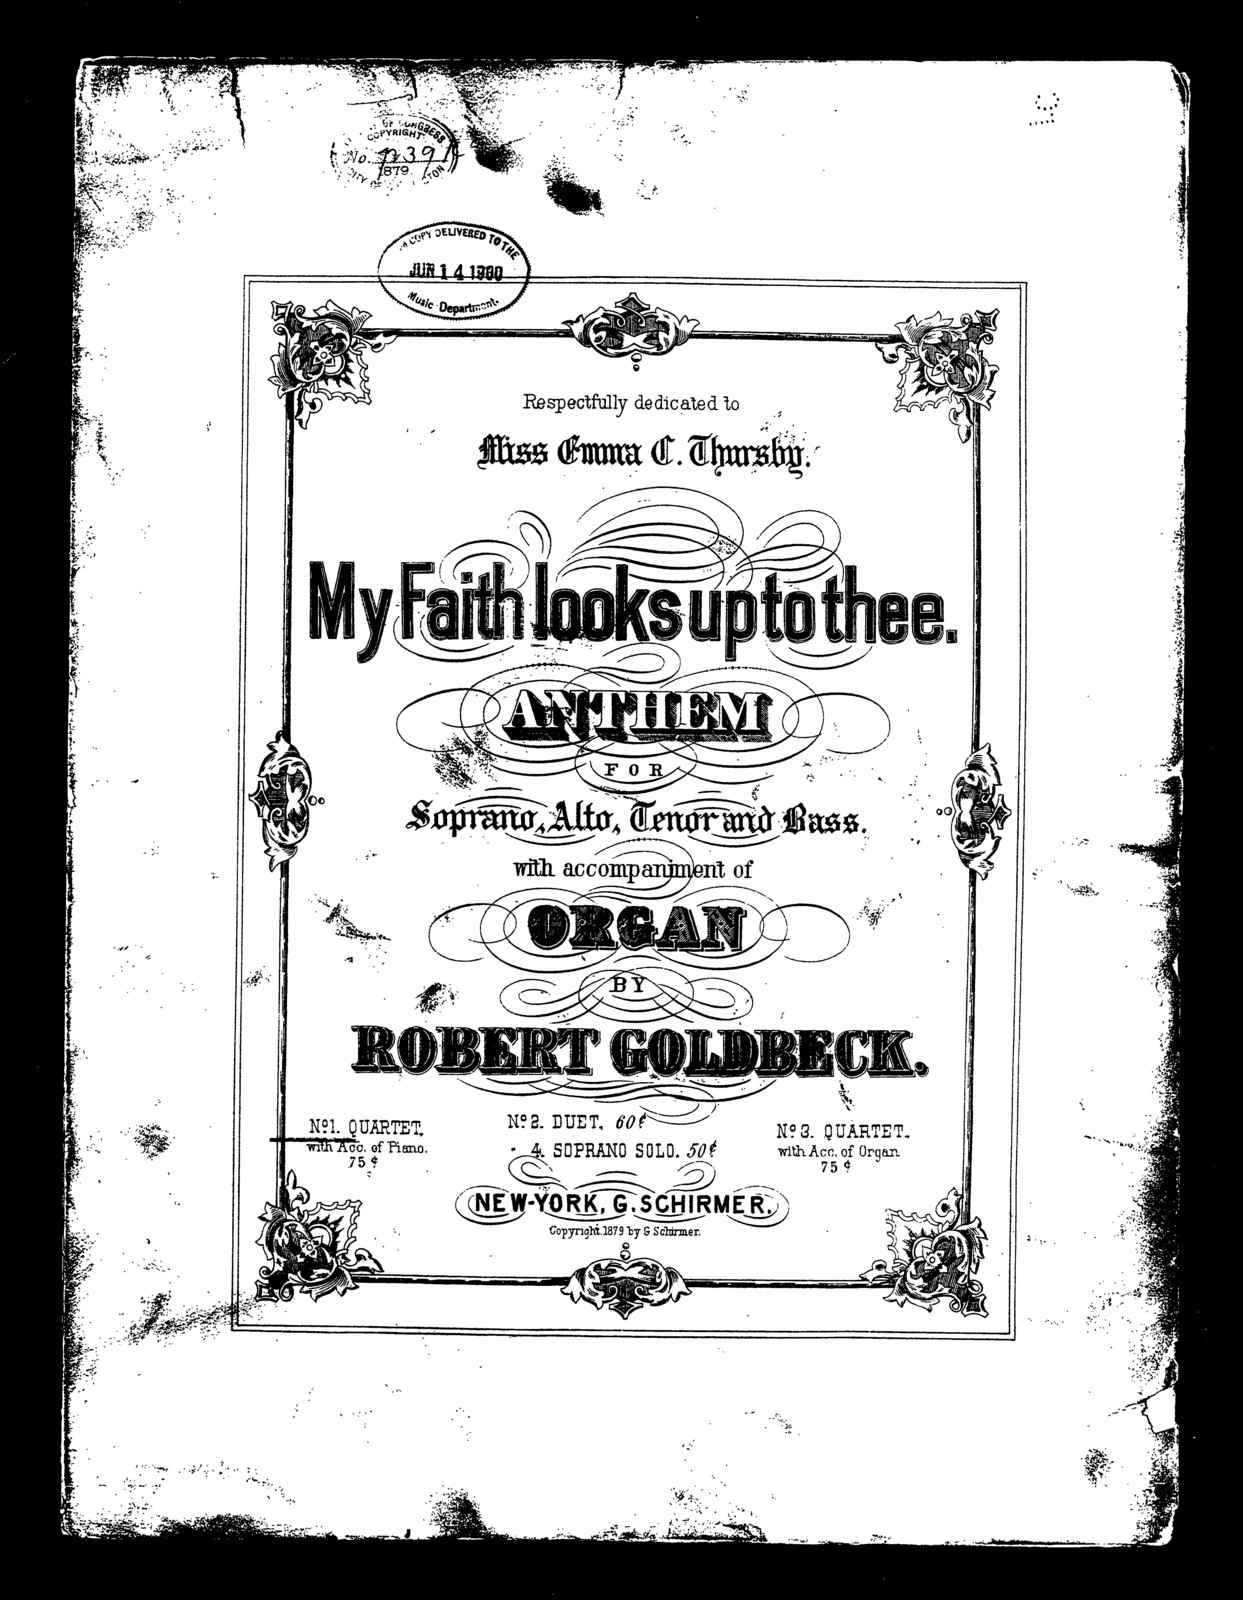 My faith looks up to thee, no. 1 [quartet]